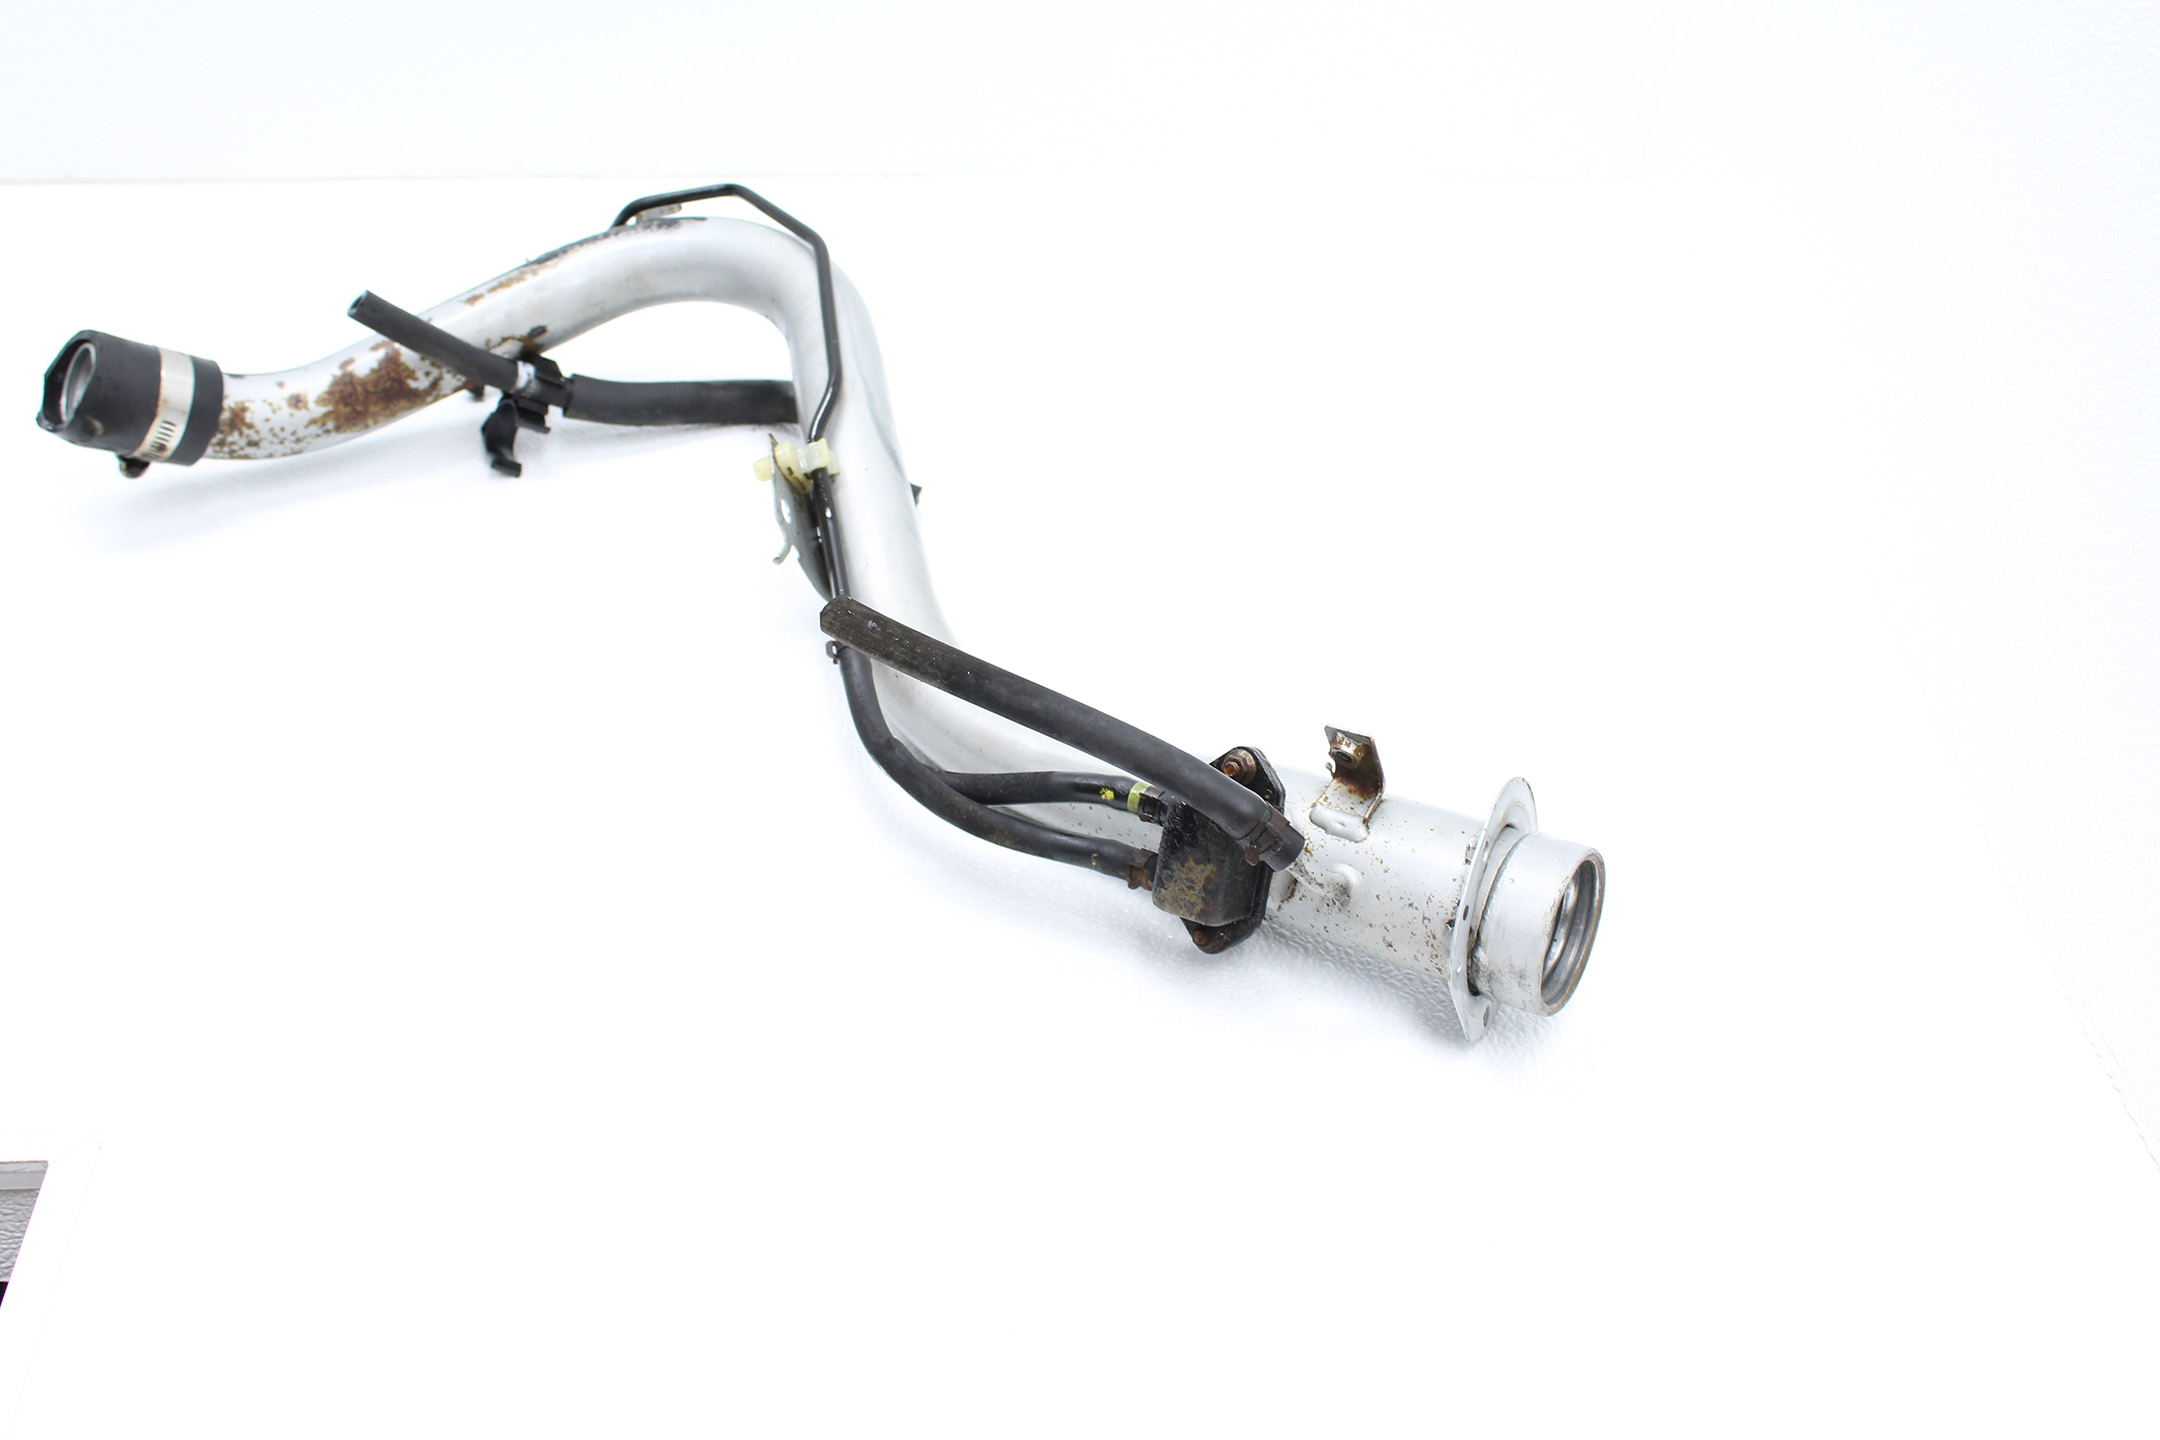 1998-2001 SUBARU IMPREZA 2.5 RS GC8 FUEL FILLER NECK TUBE